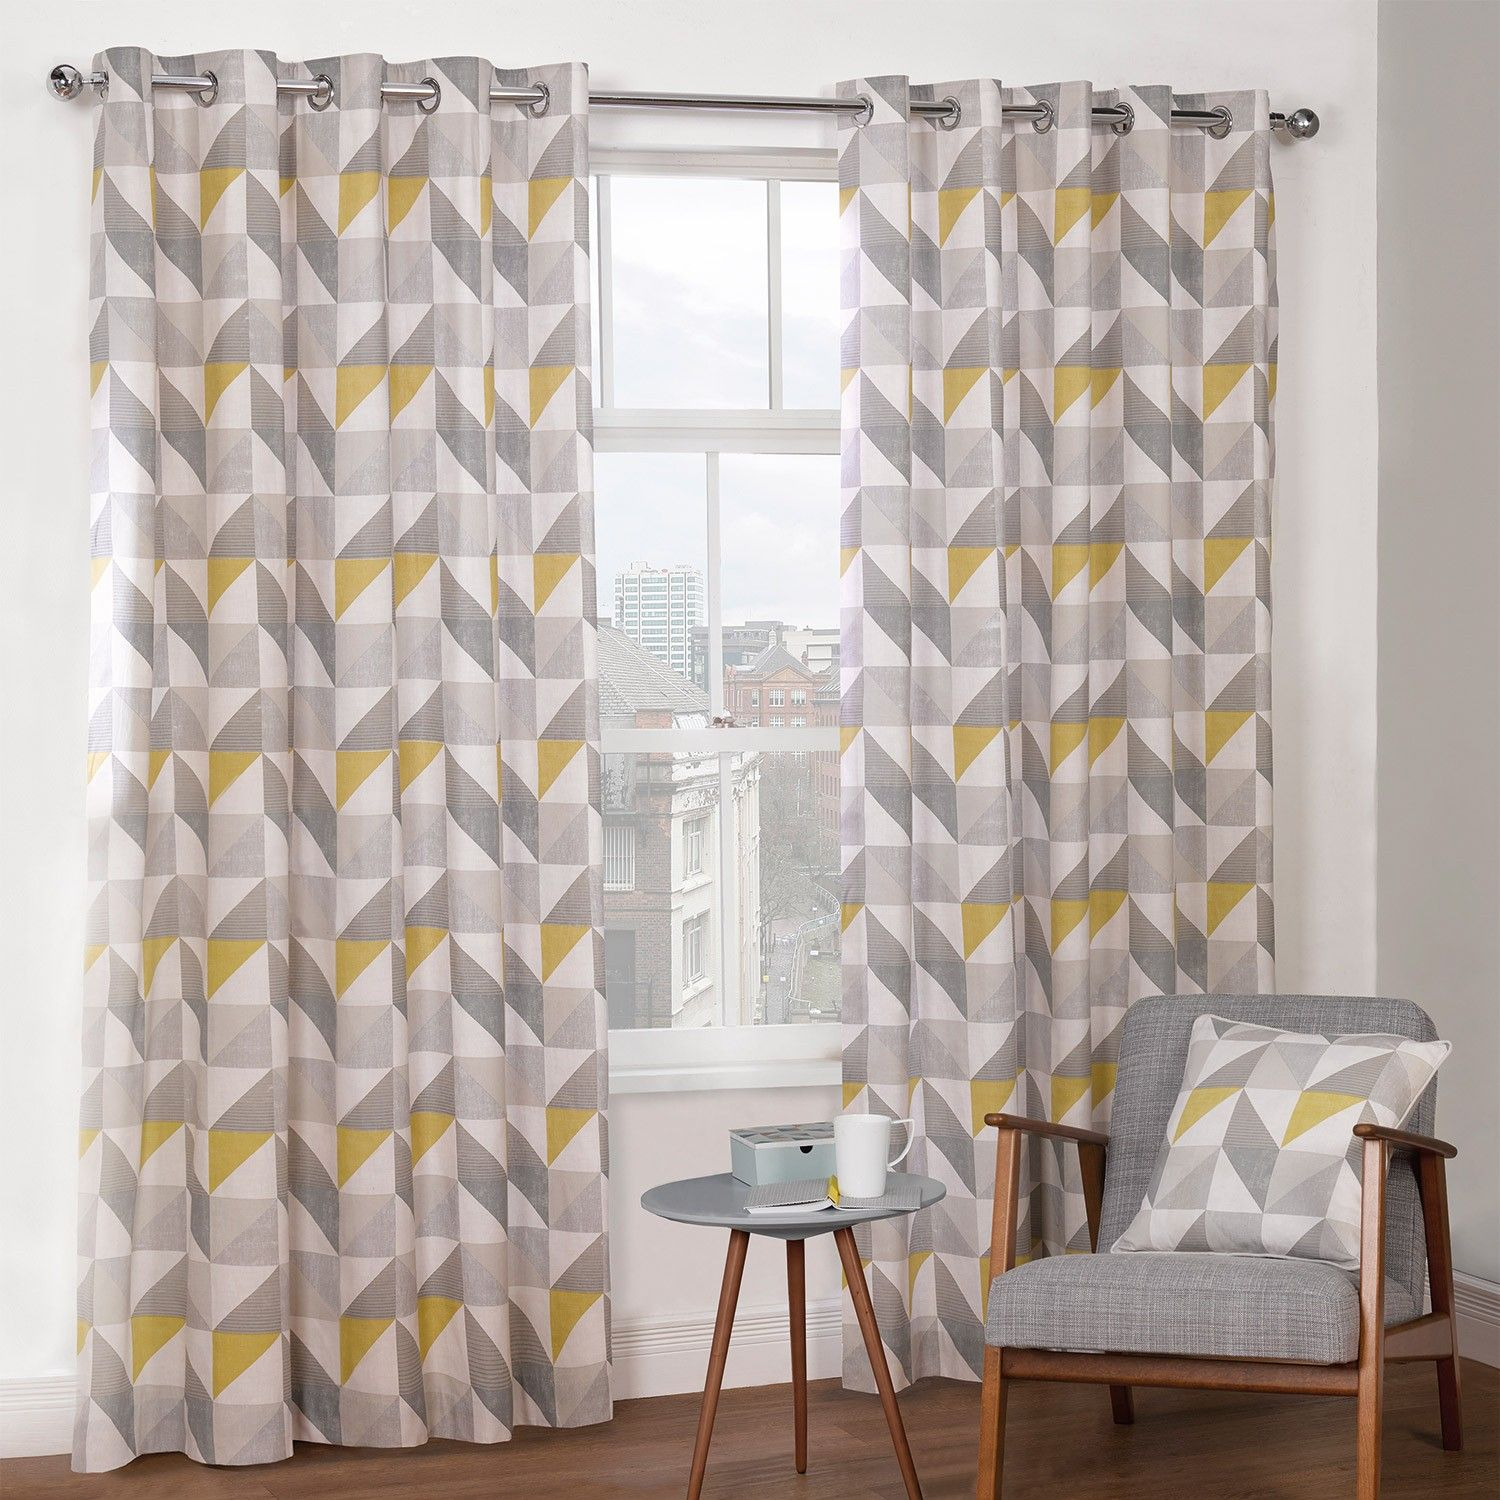 Kitchen Curtains Yellow And Gray: Delta Grey & Yellow Luxury Lined Eyelet Curtains (Pair